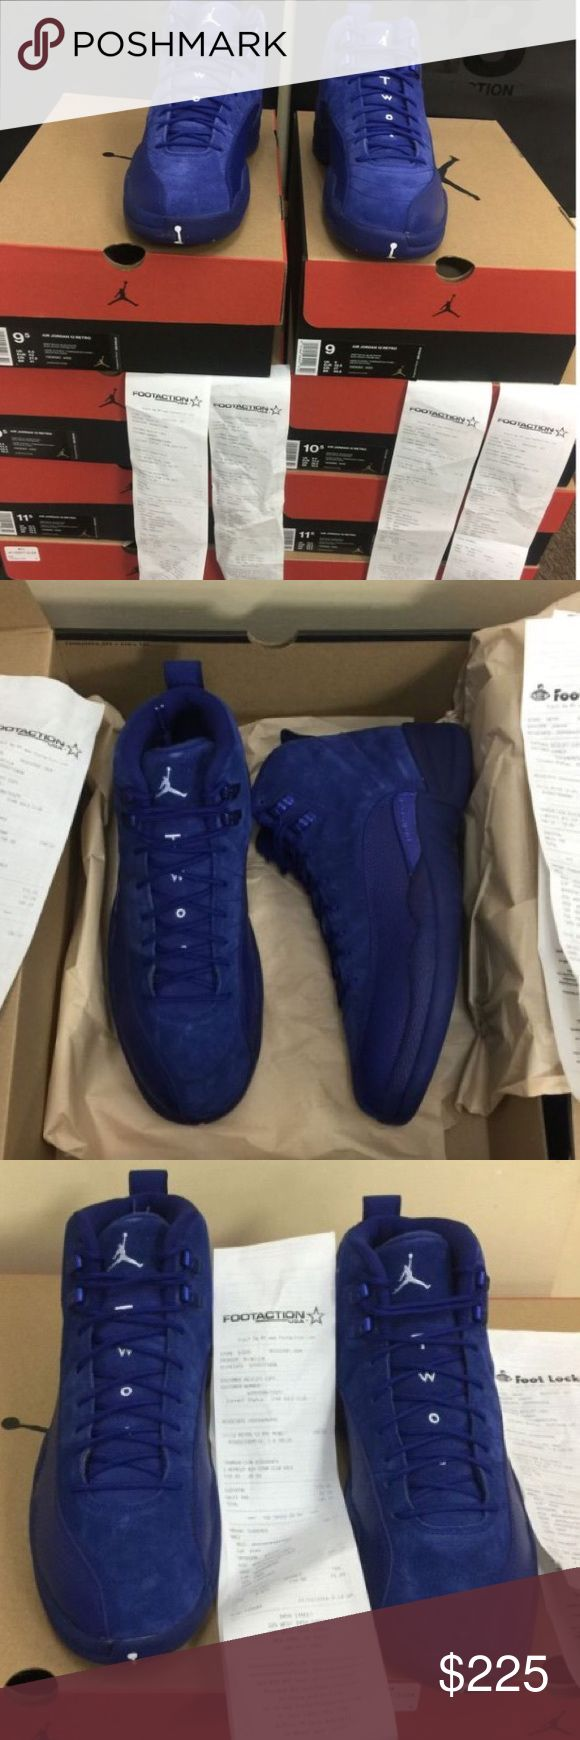 Nike Air Jordan XXI Retro 12 Deep Royal Blue AUTHENTIC!!! If you are interested in purchasing my product, from here on out contact me at (912) 319-7340 Jordan Shoes Sneakers